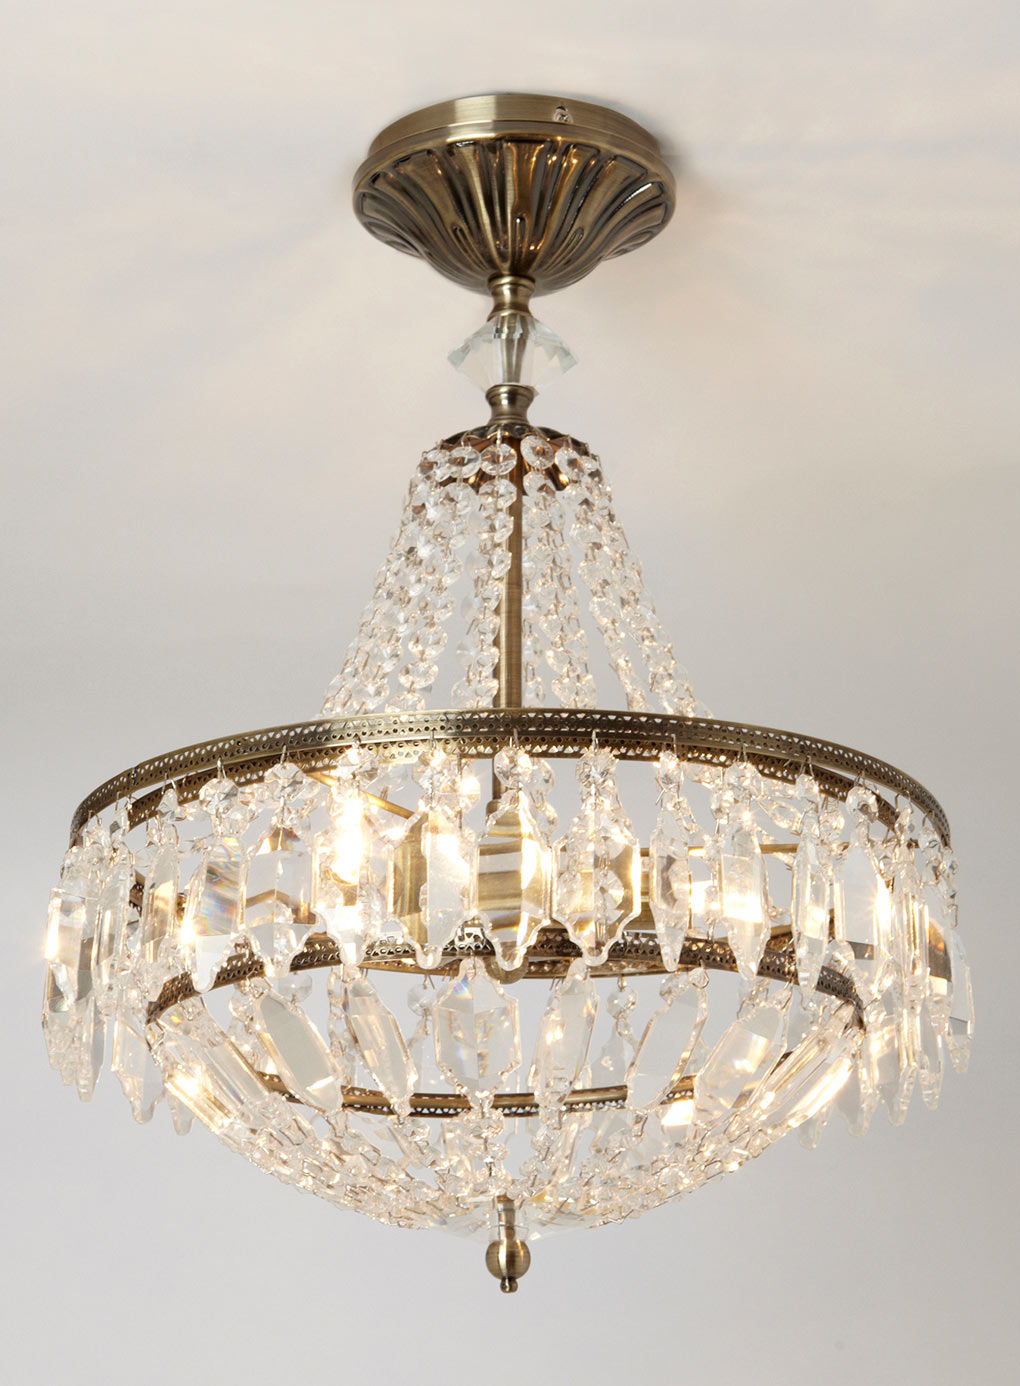 Sienna Ceiling Light Bhs : Bhs ceiling light quench your thirst for beauty and